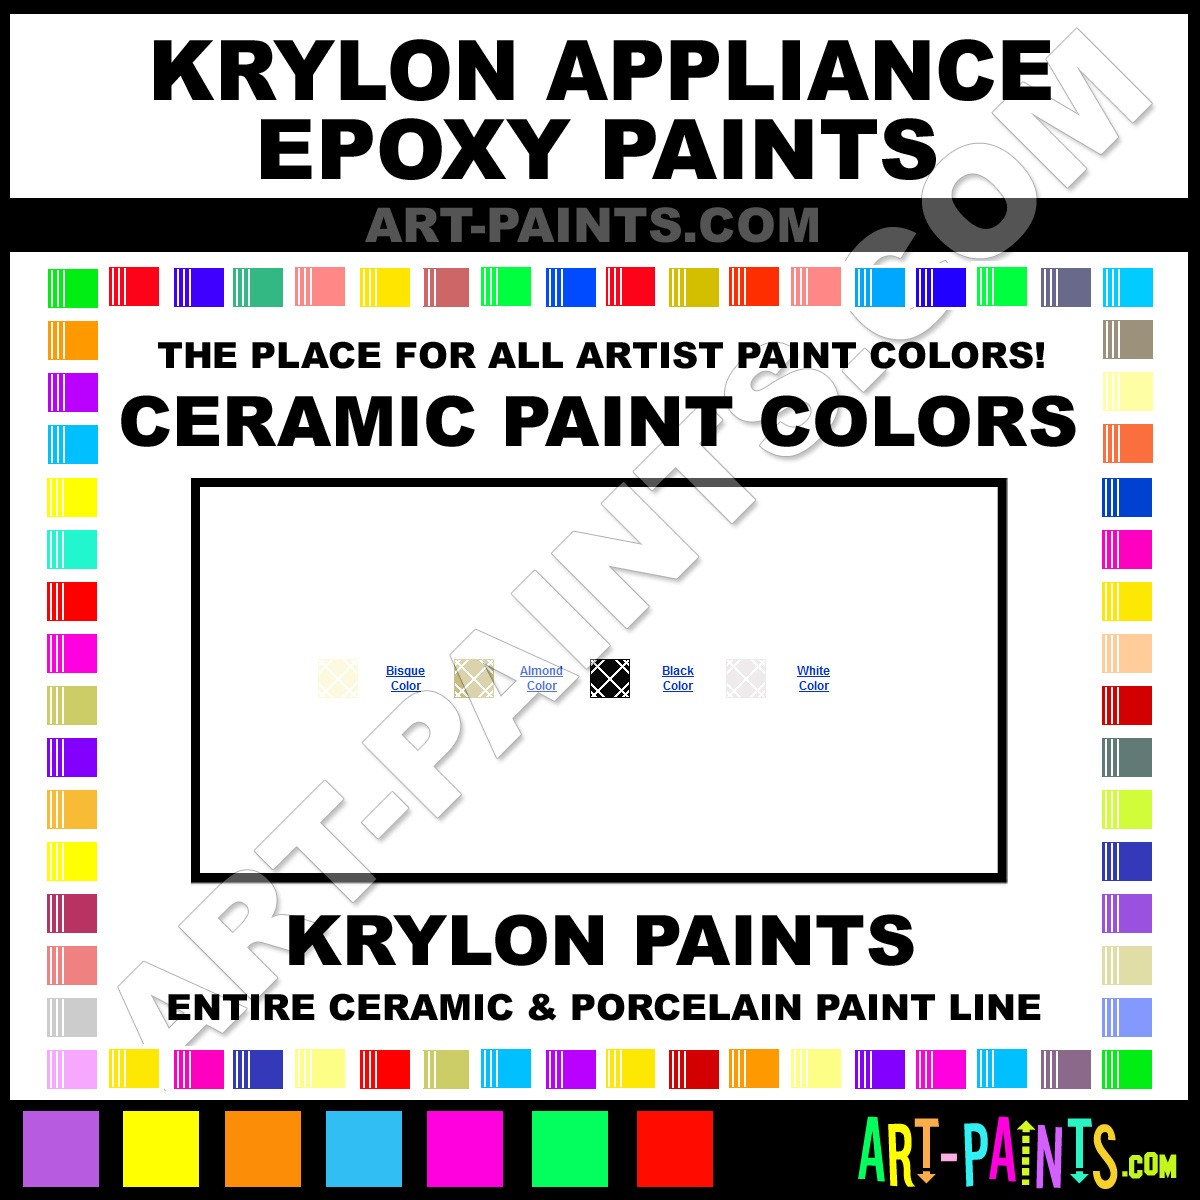 Krylon Appliance Epoxy Ceramic Porcelain Paint Colors Krylon Appliance Epoxy Paint Colors